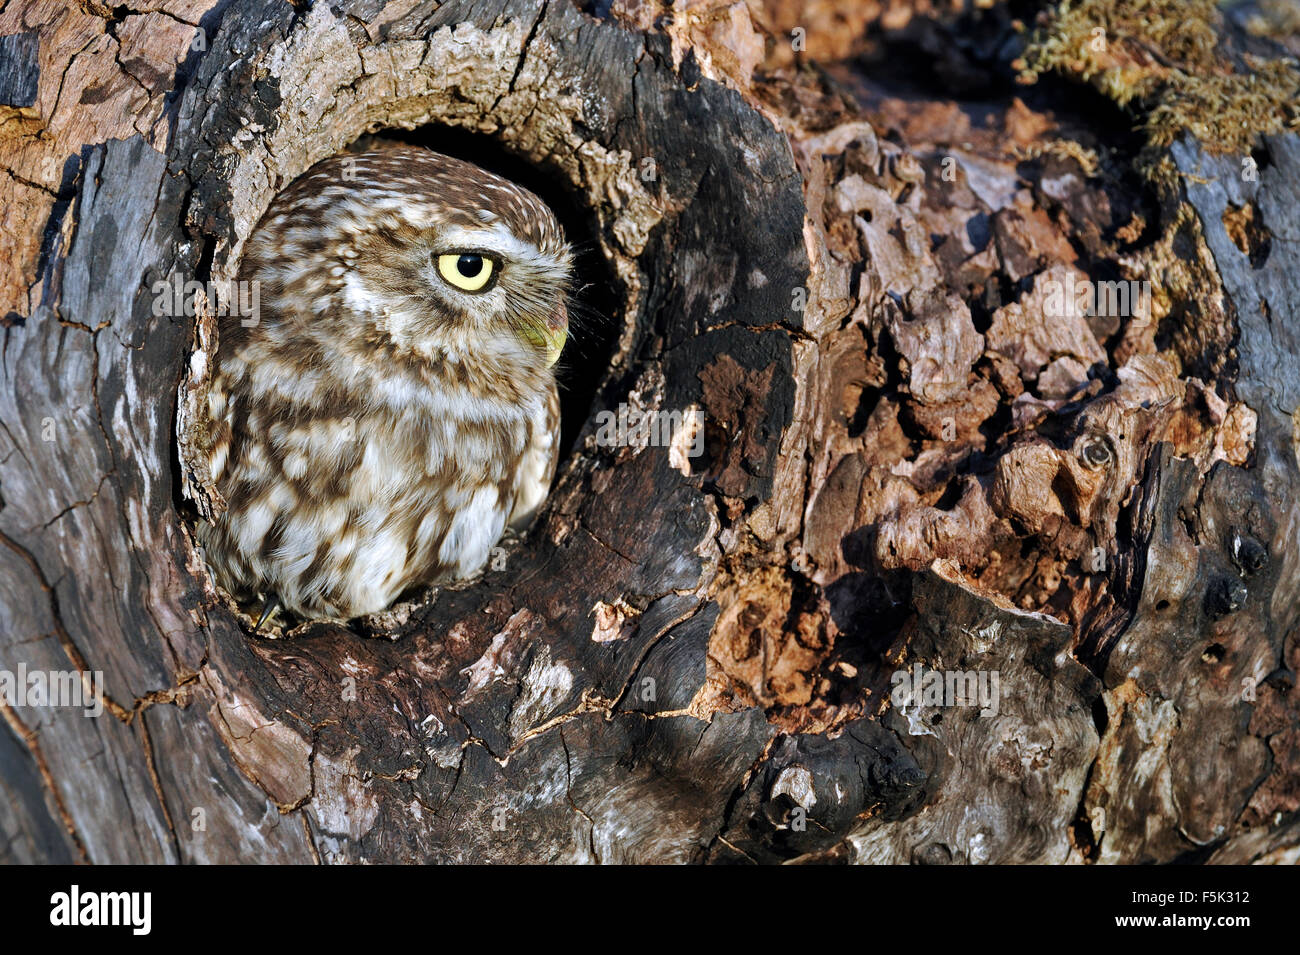 Little owl (Athene noctua) looking through nest hole in old tree - Stock Image